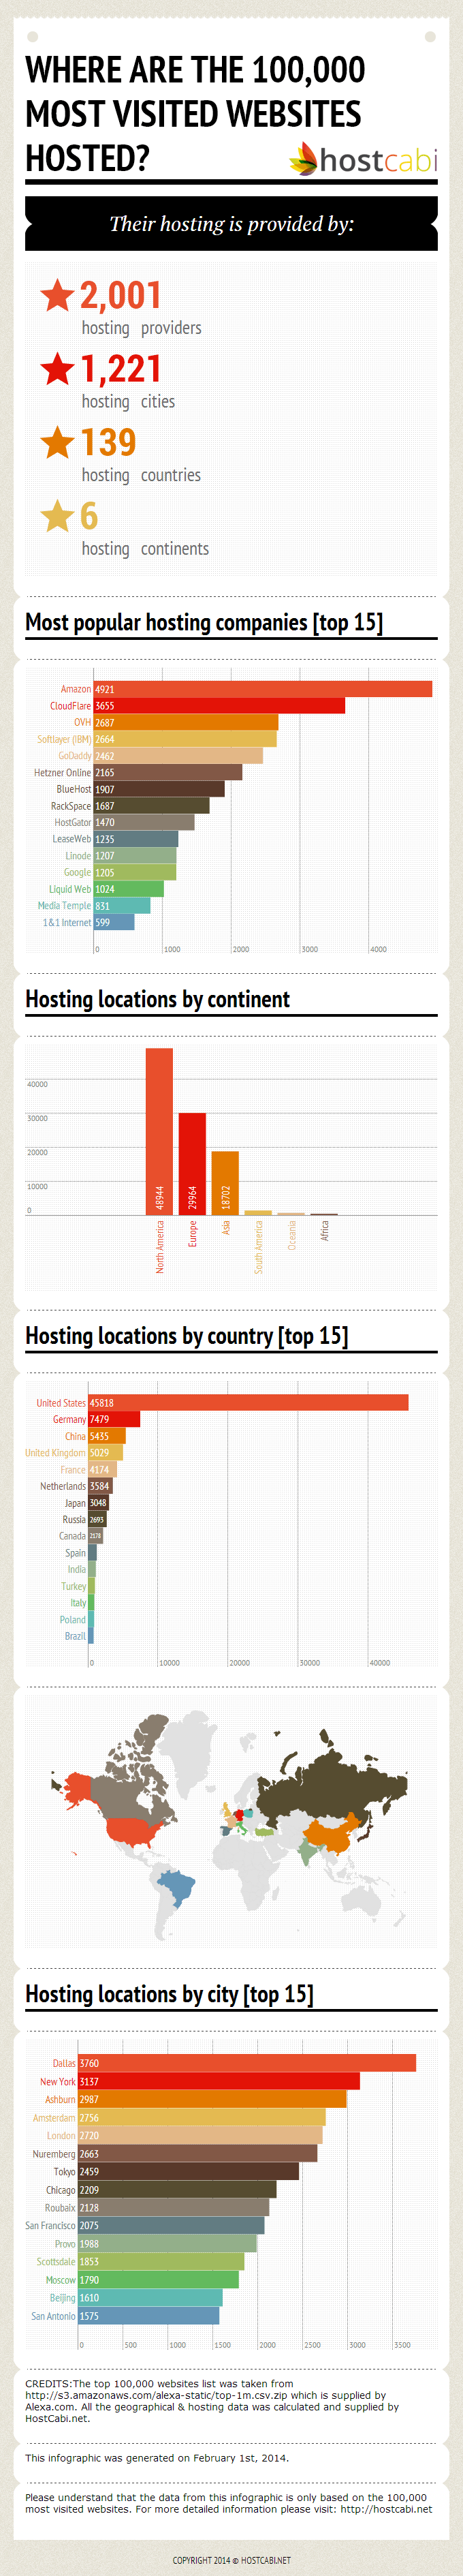 most visited hosted